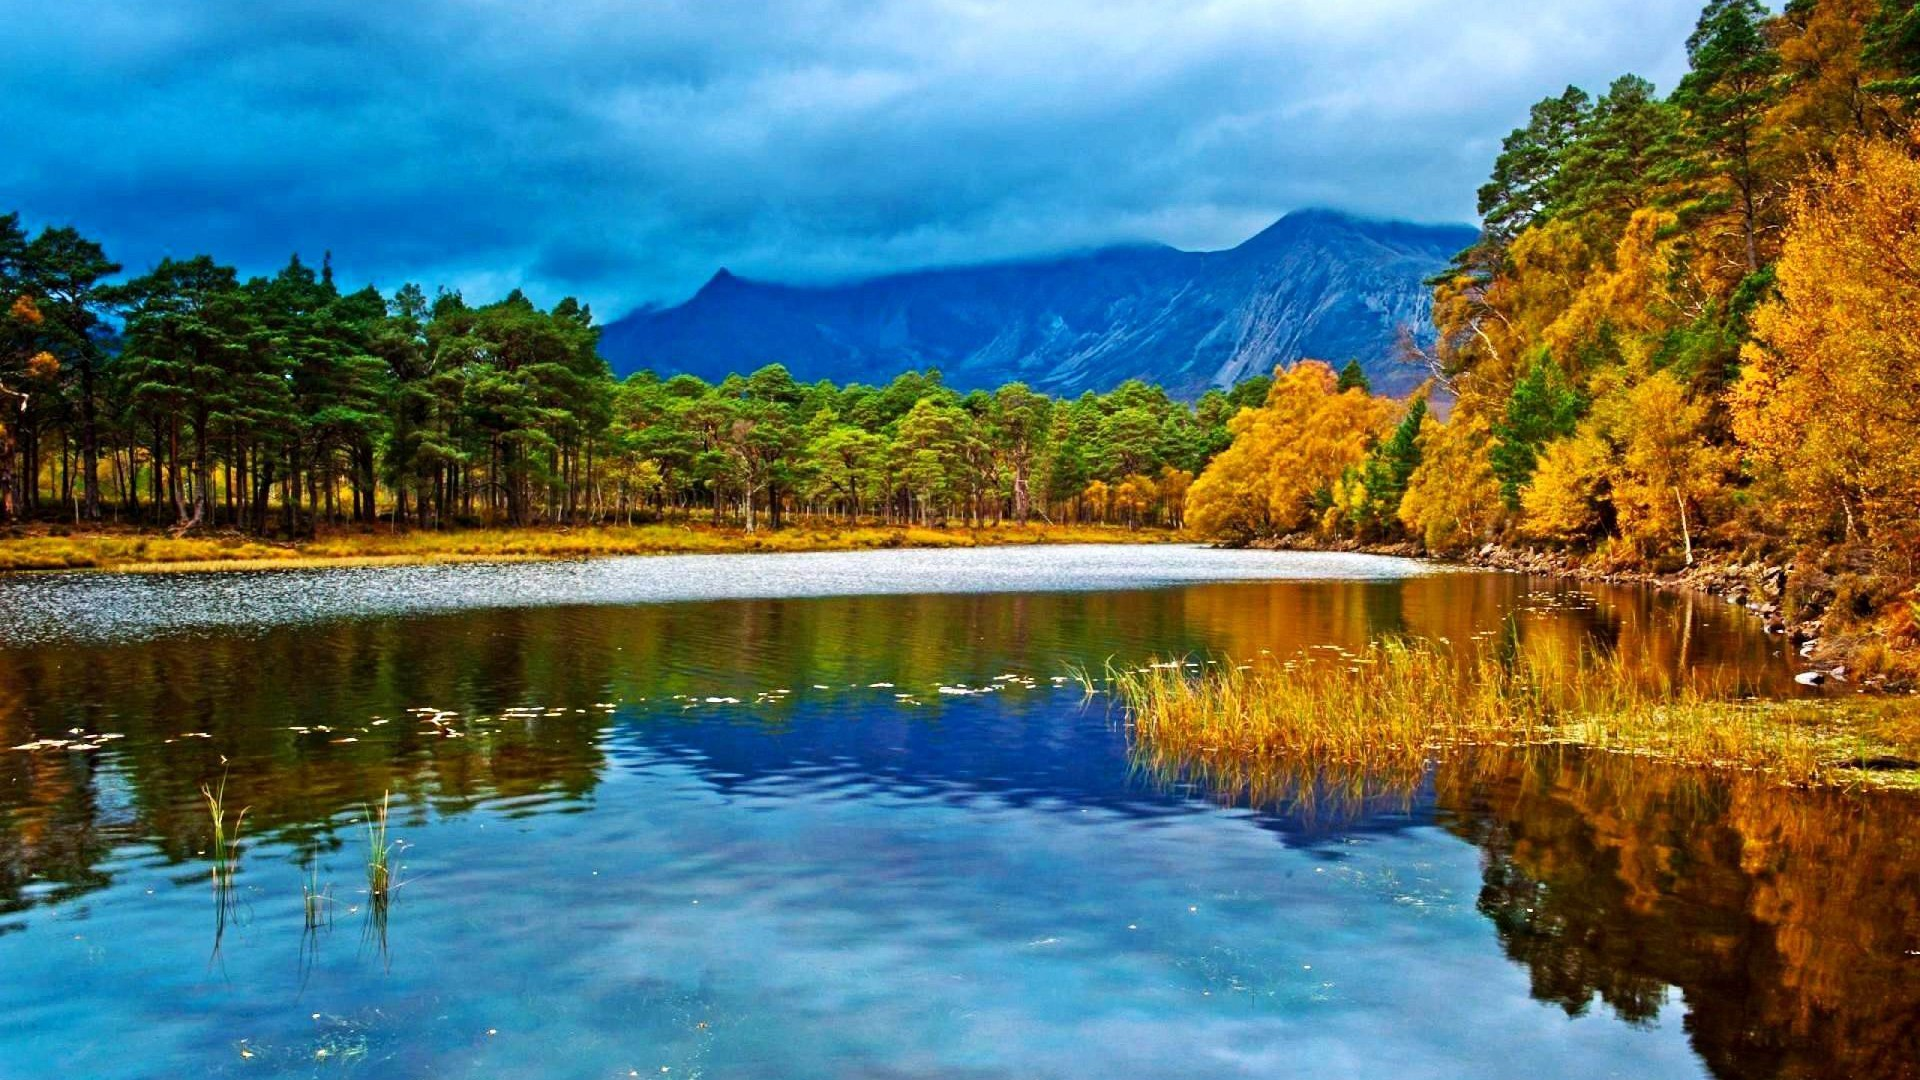 scottish landscape desktop backgrounds